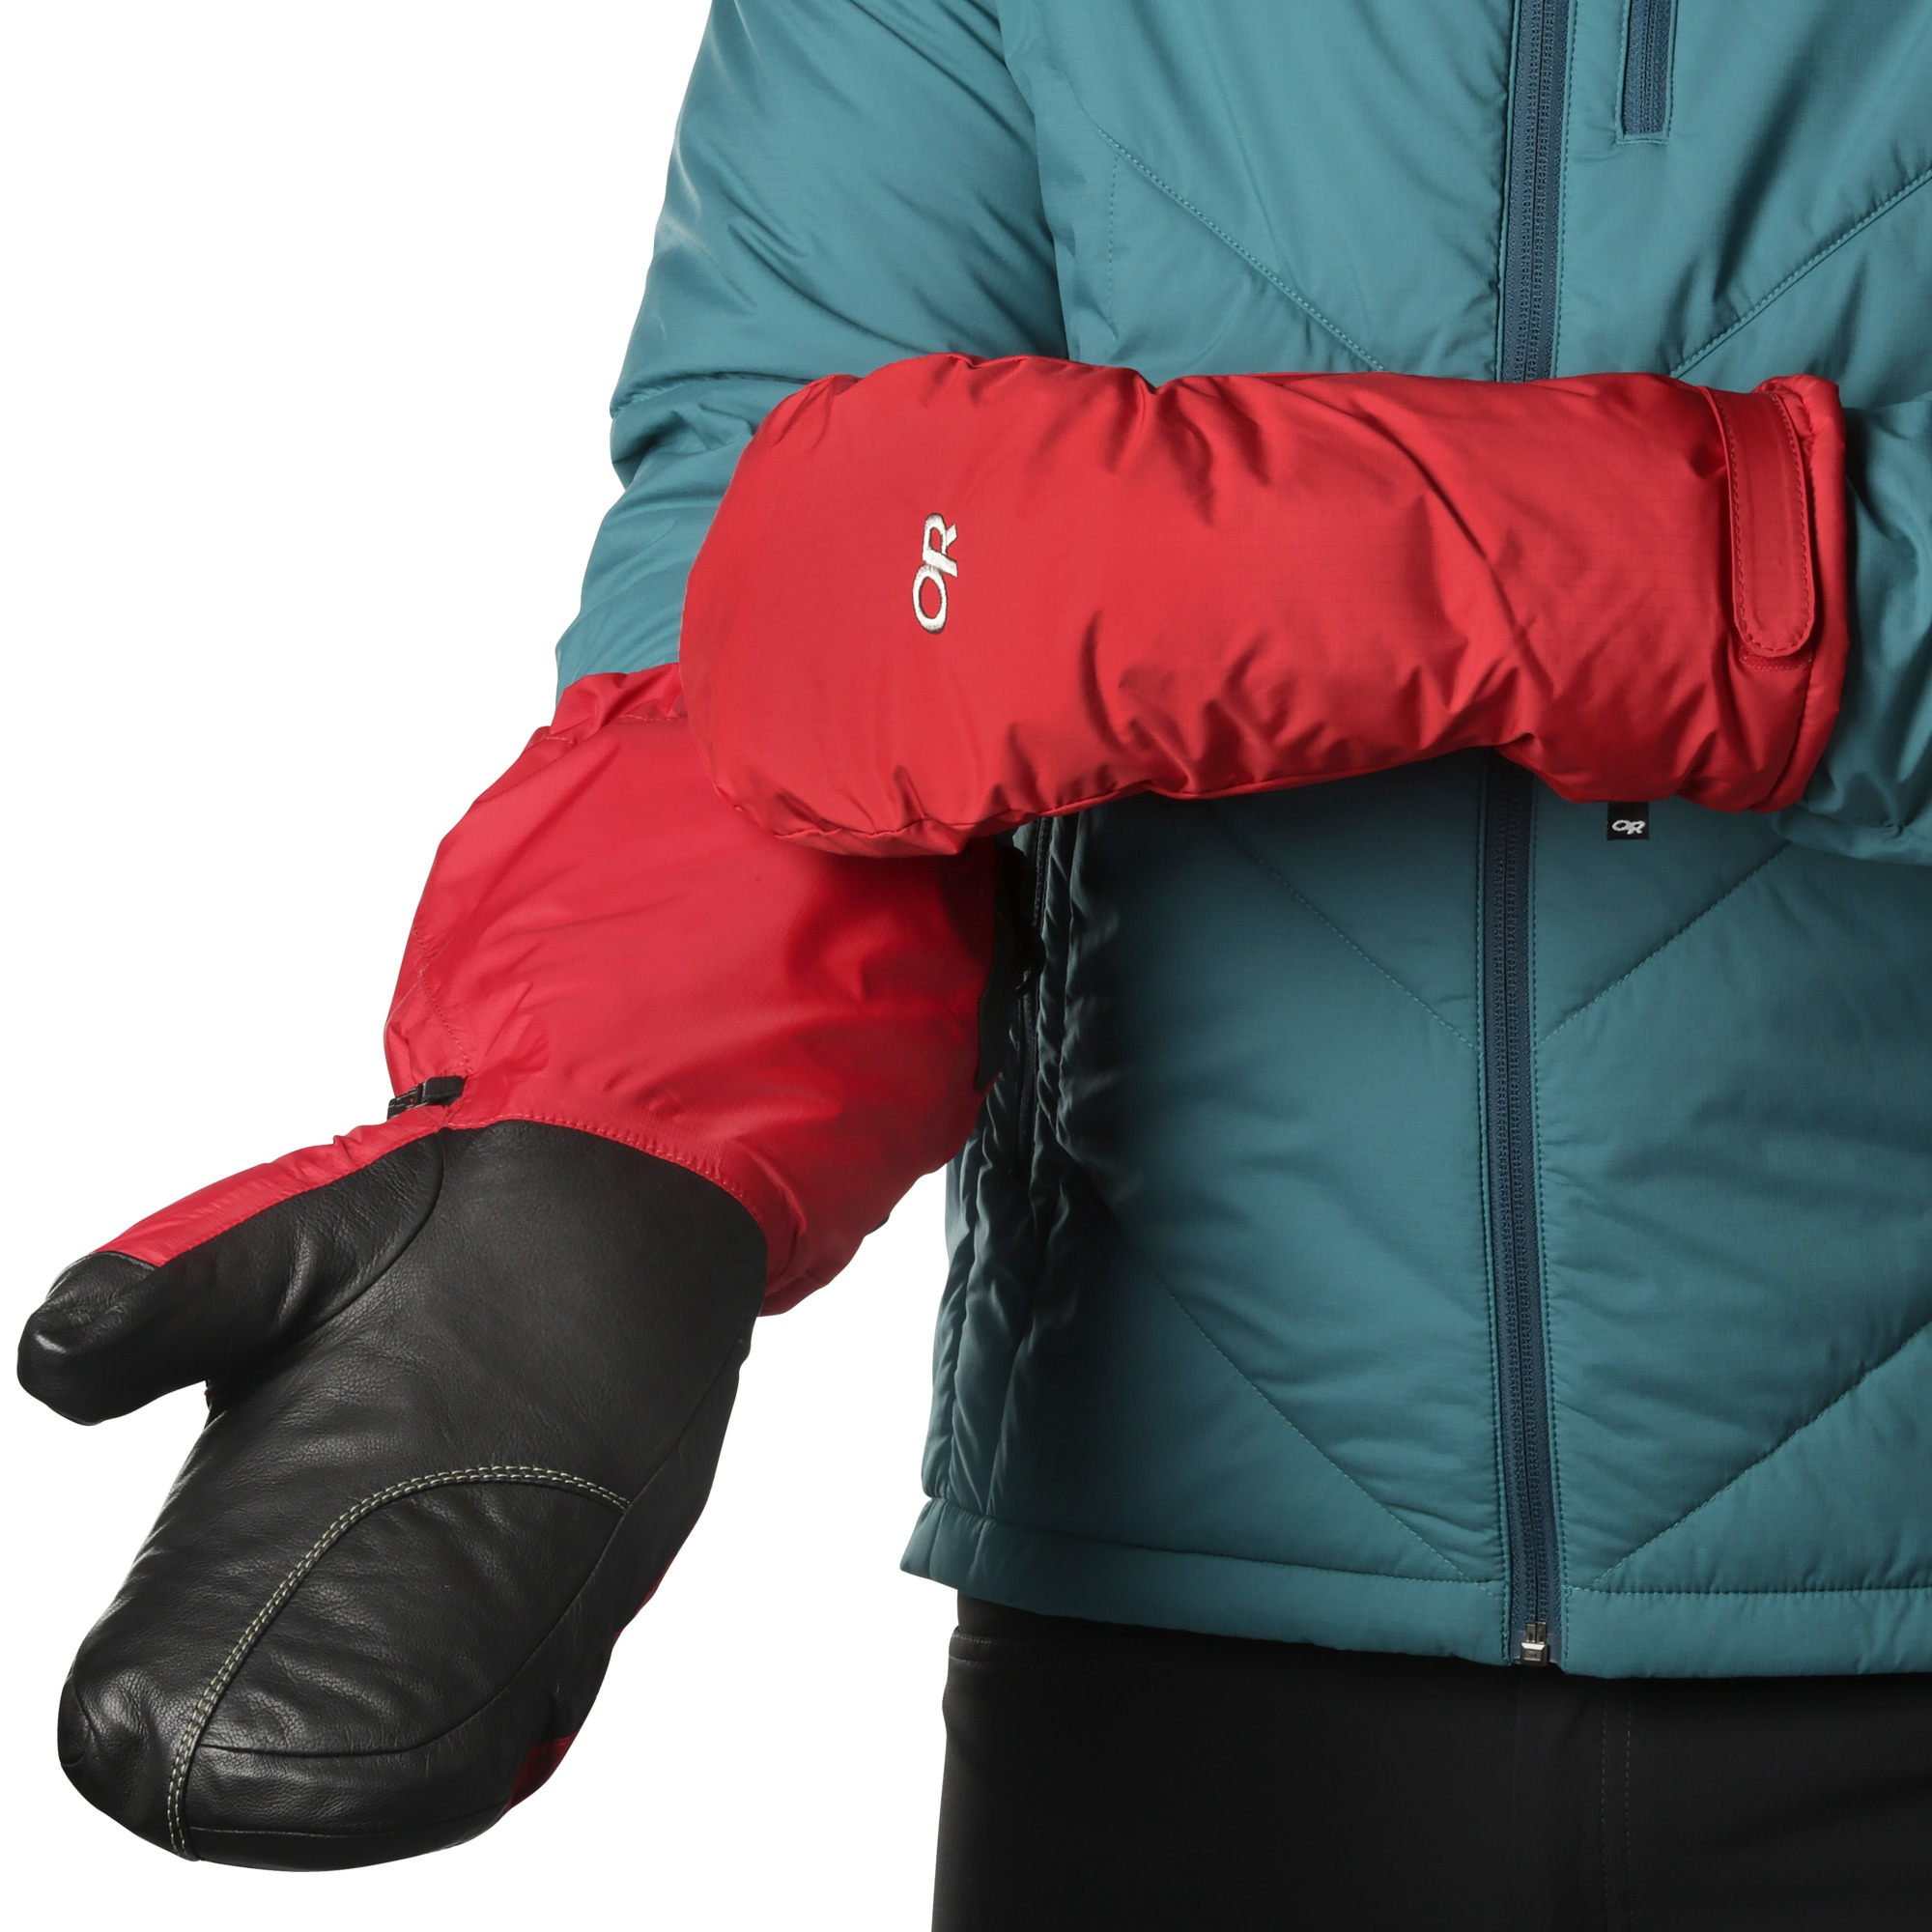 bd2bcda23 Men's Alti Mitts - black | Outdoor Research